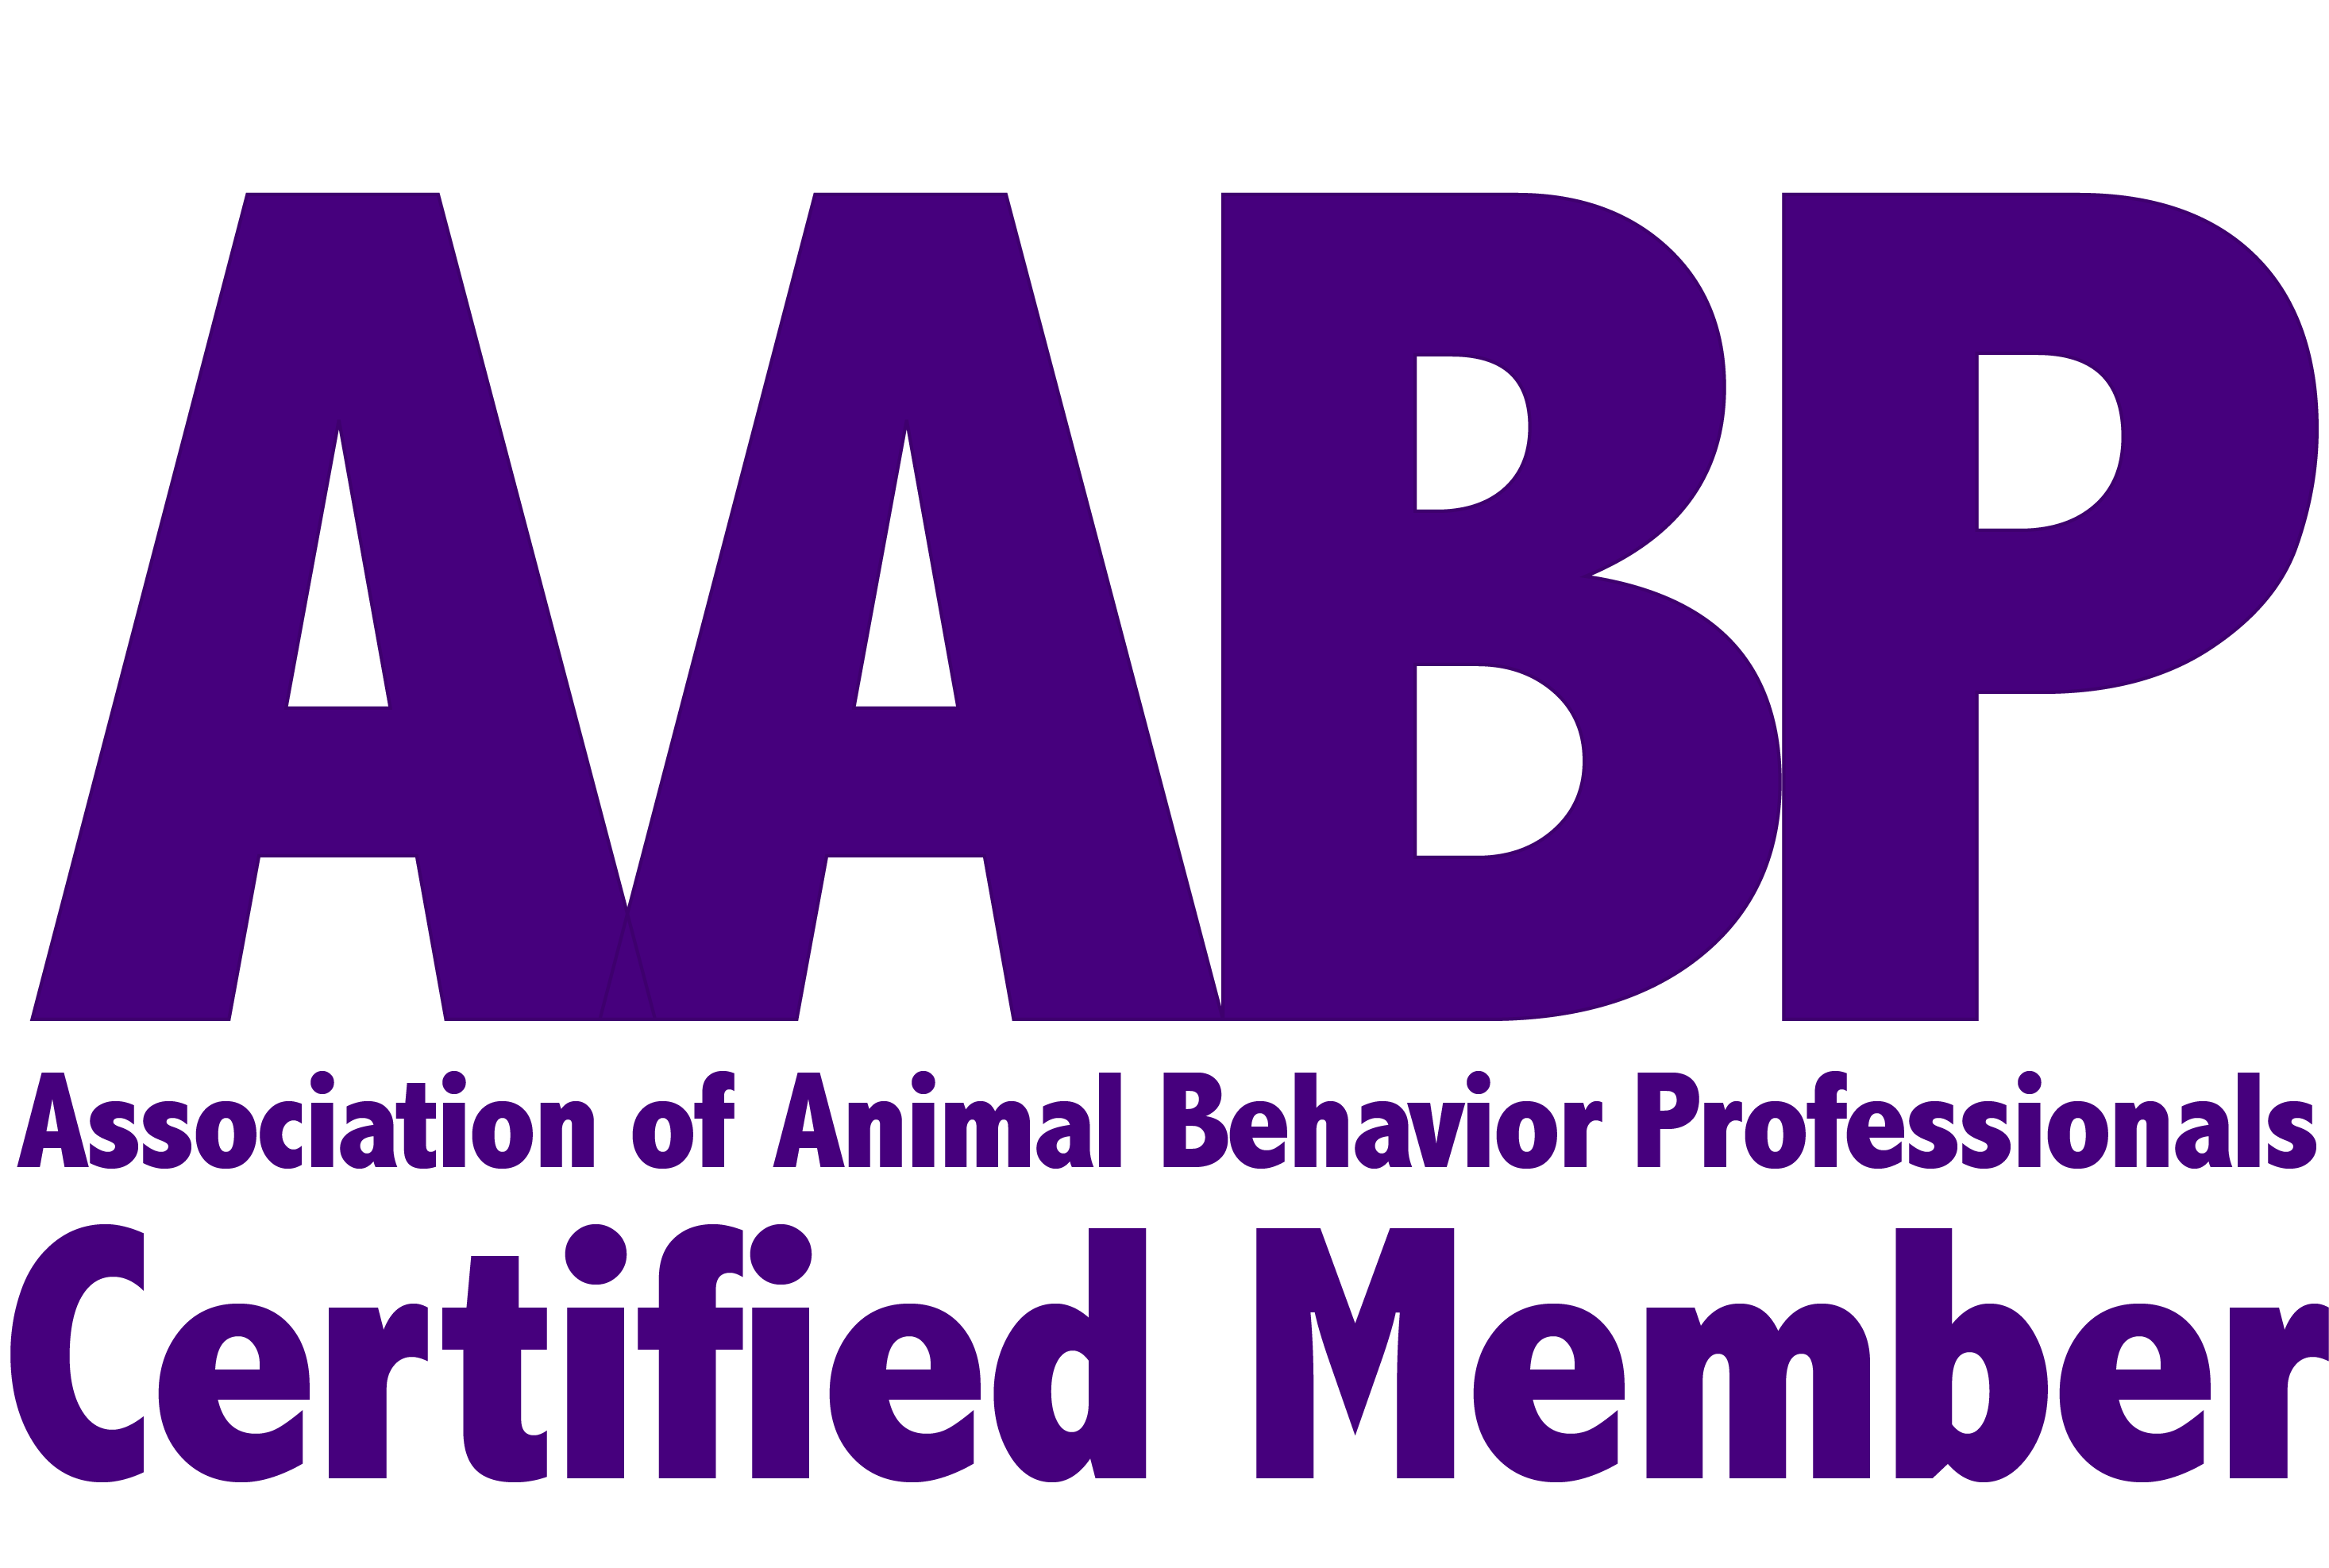 Certified Dog Trainer Association of Animal Behavior Professionals (AABP-CDT)